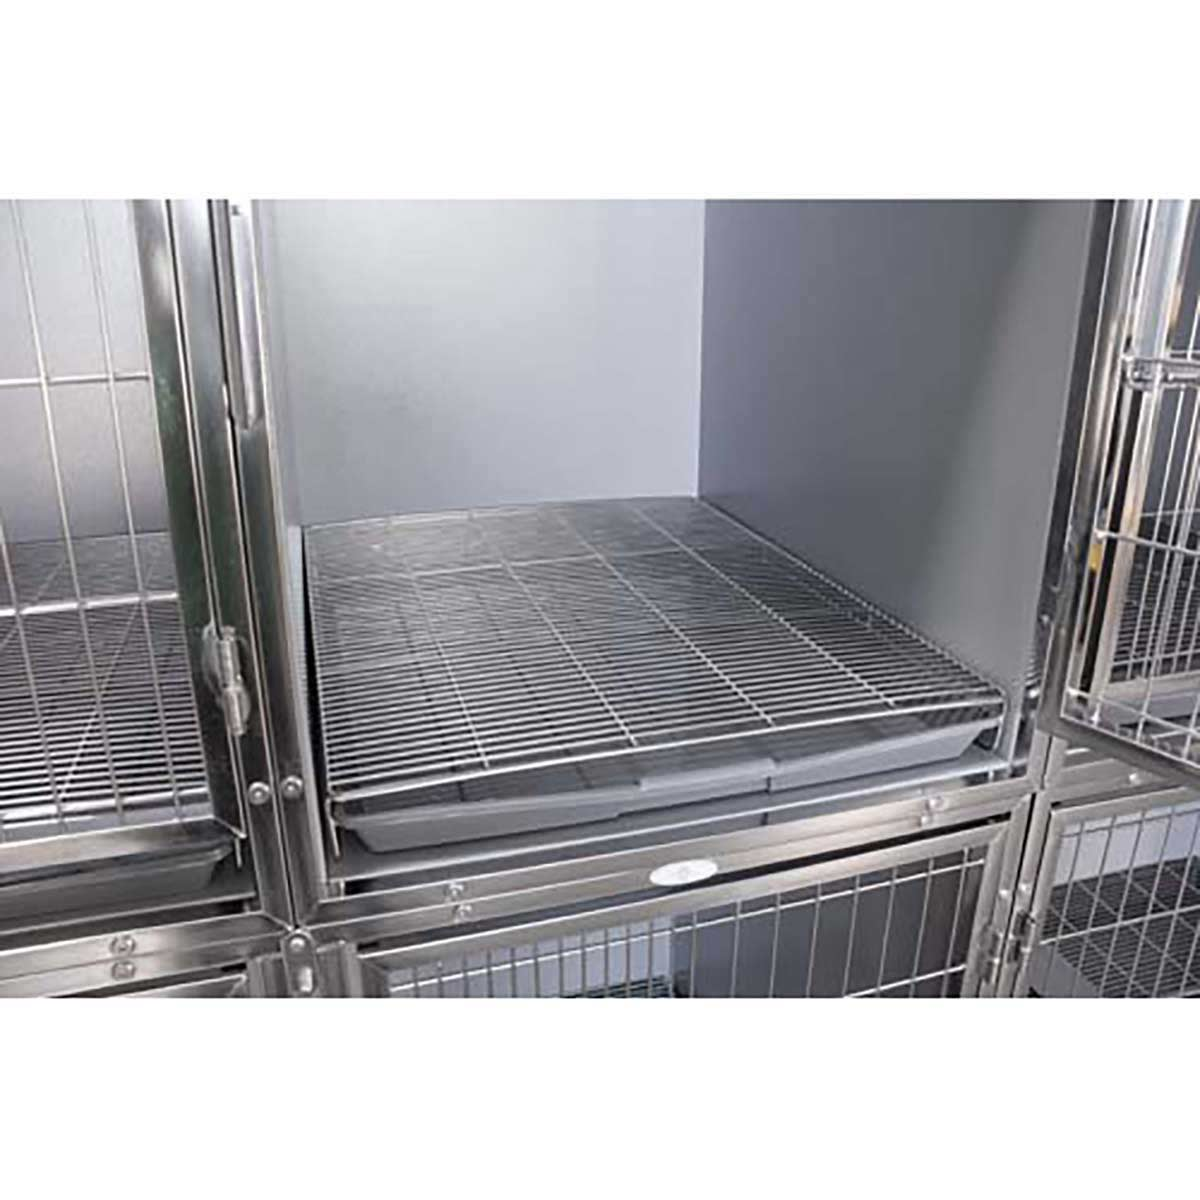 Stainless Steel Floor Grate For Small Cage